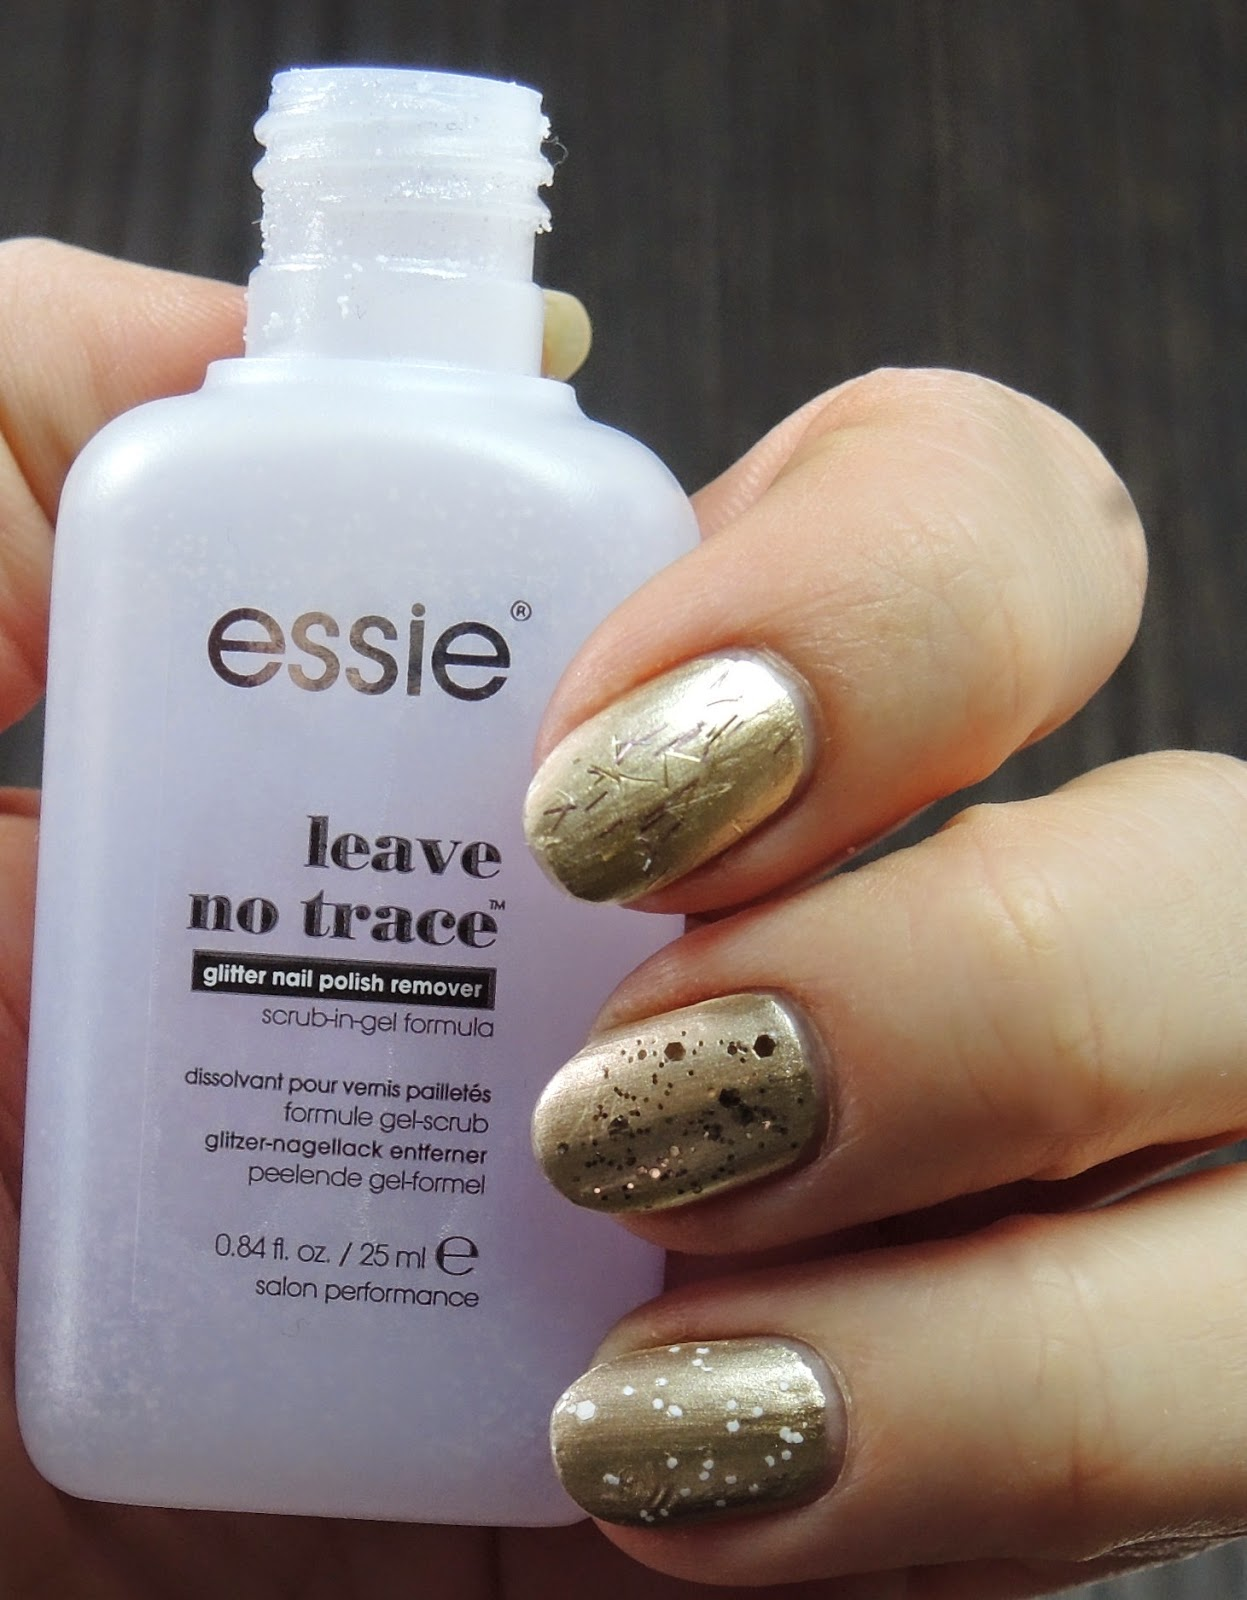 Essie leve no trace